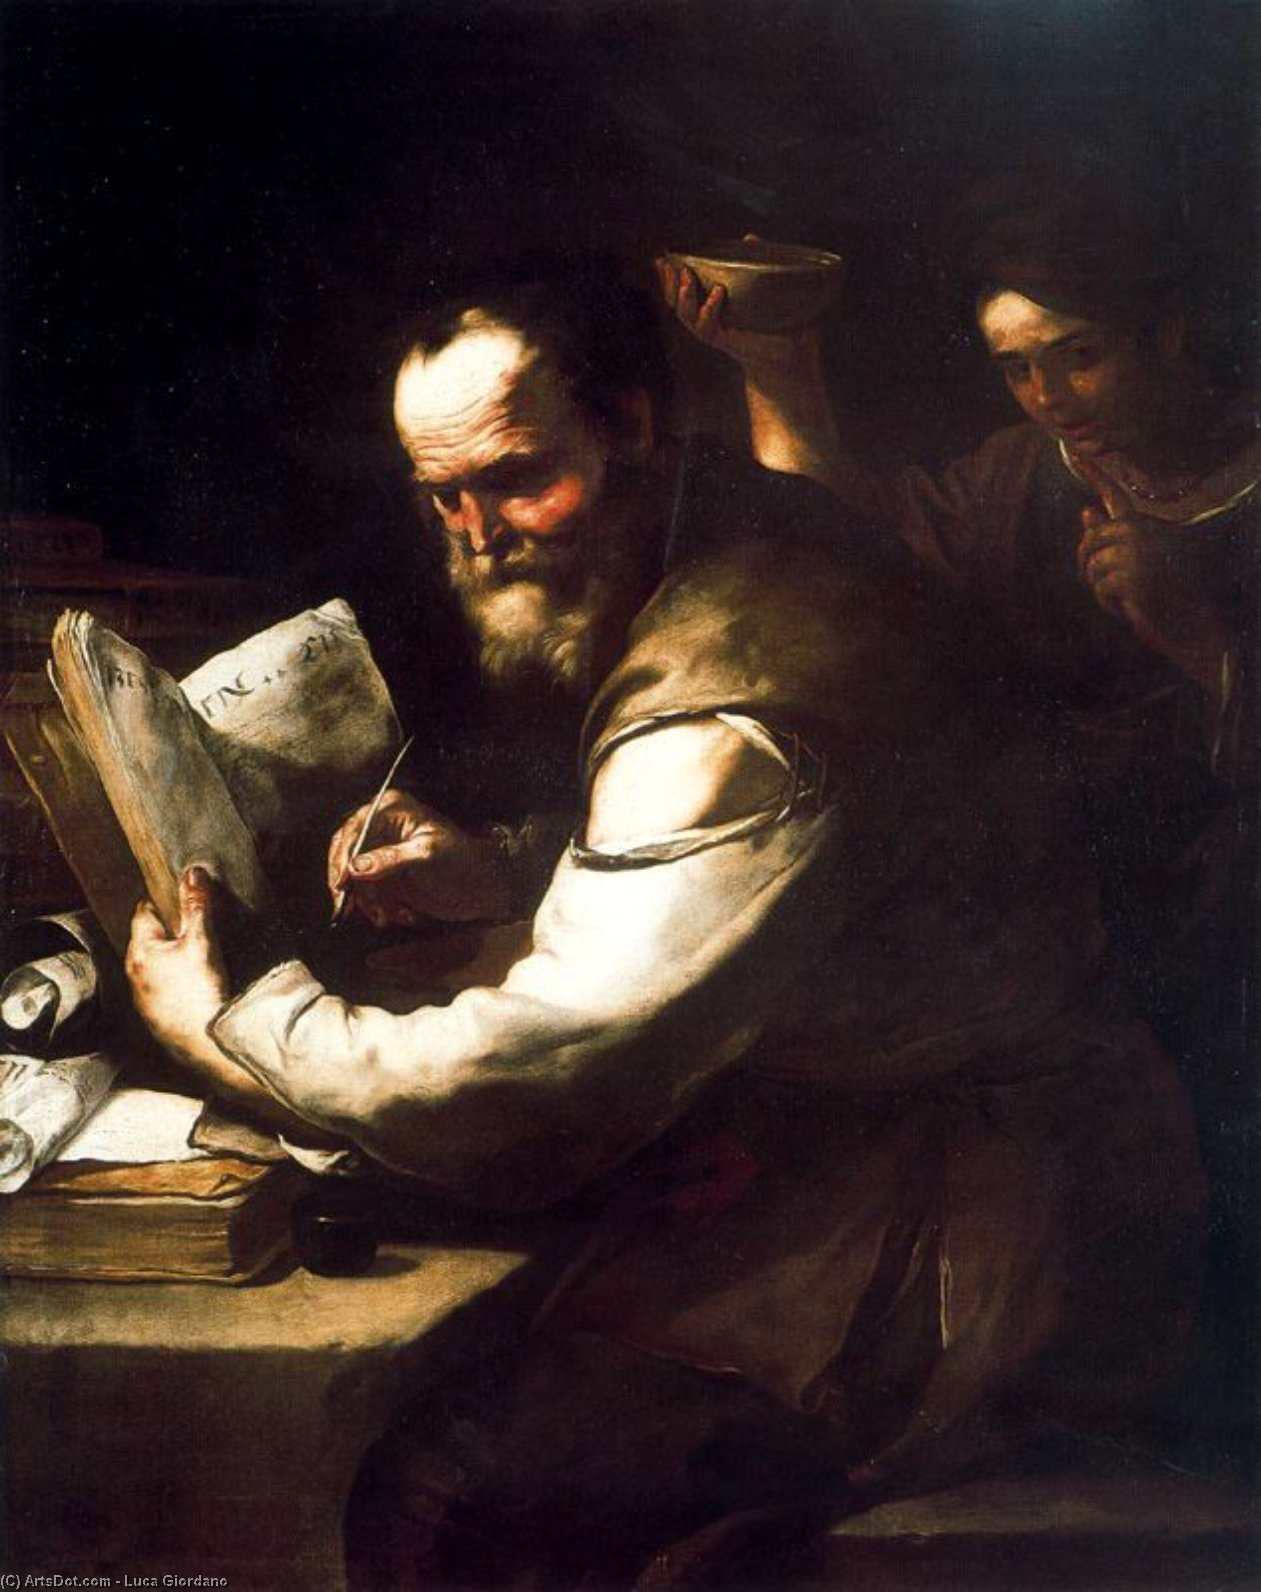 Xanthippe I'acqua poured into the neck of Socrates by Luca Giordano (1634-1705, Italy)